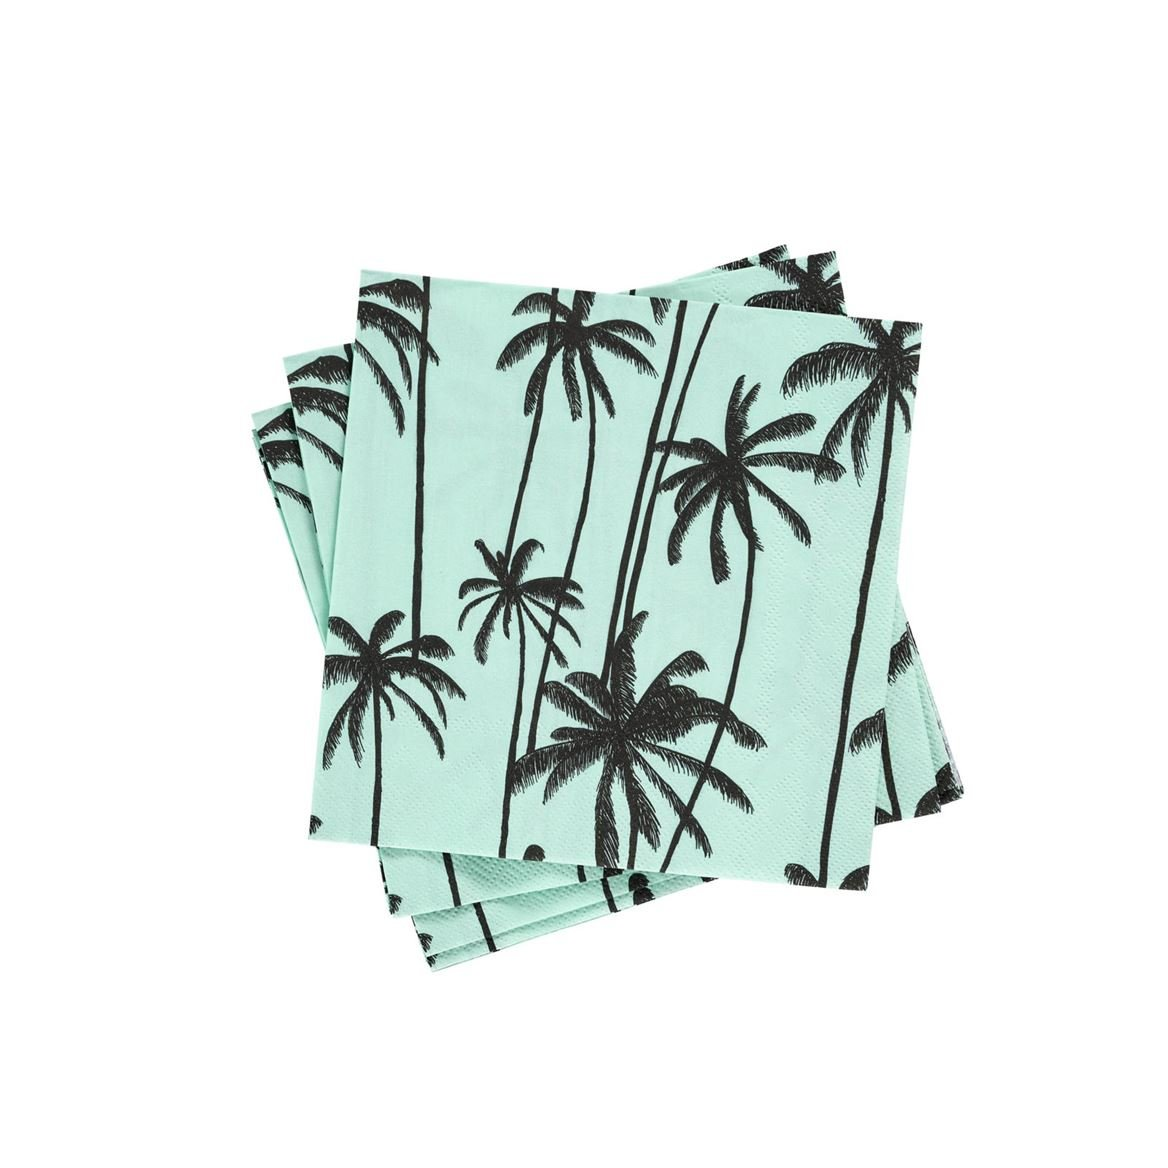 MINTY PALMS Set de 20 serviettes vert Larg. 33 x Long. 33 cm_minty-palms-set-de-20-serviettes-vert-larg--33-x-long--33-cm